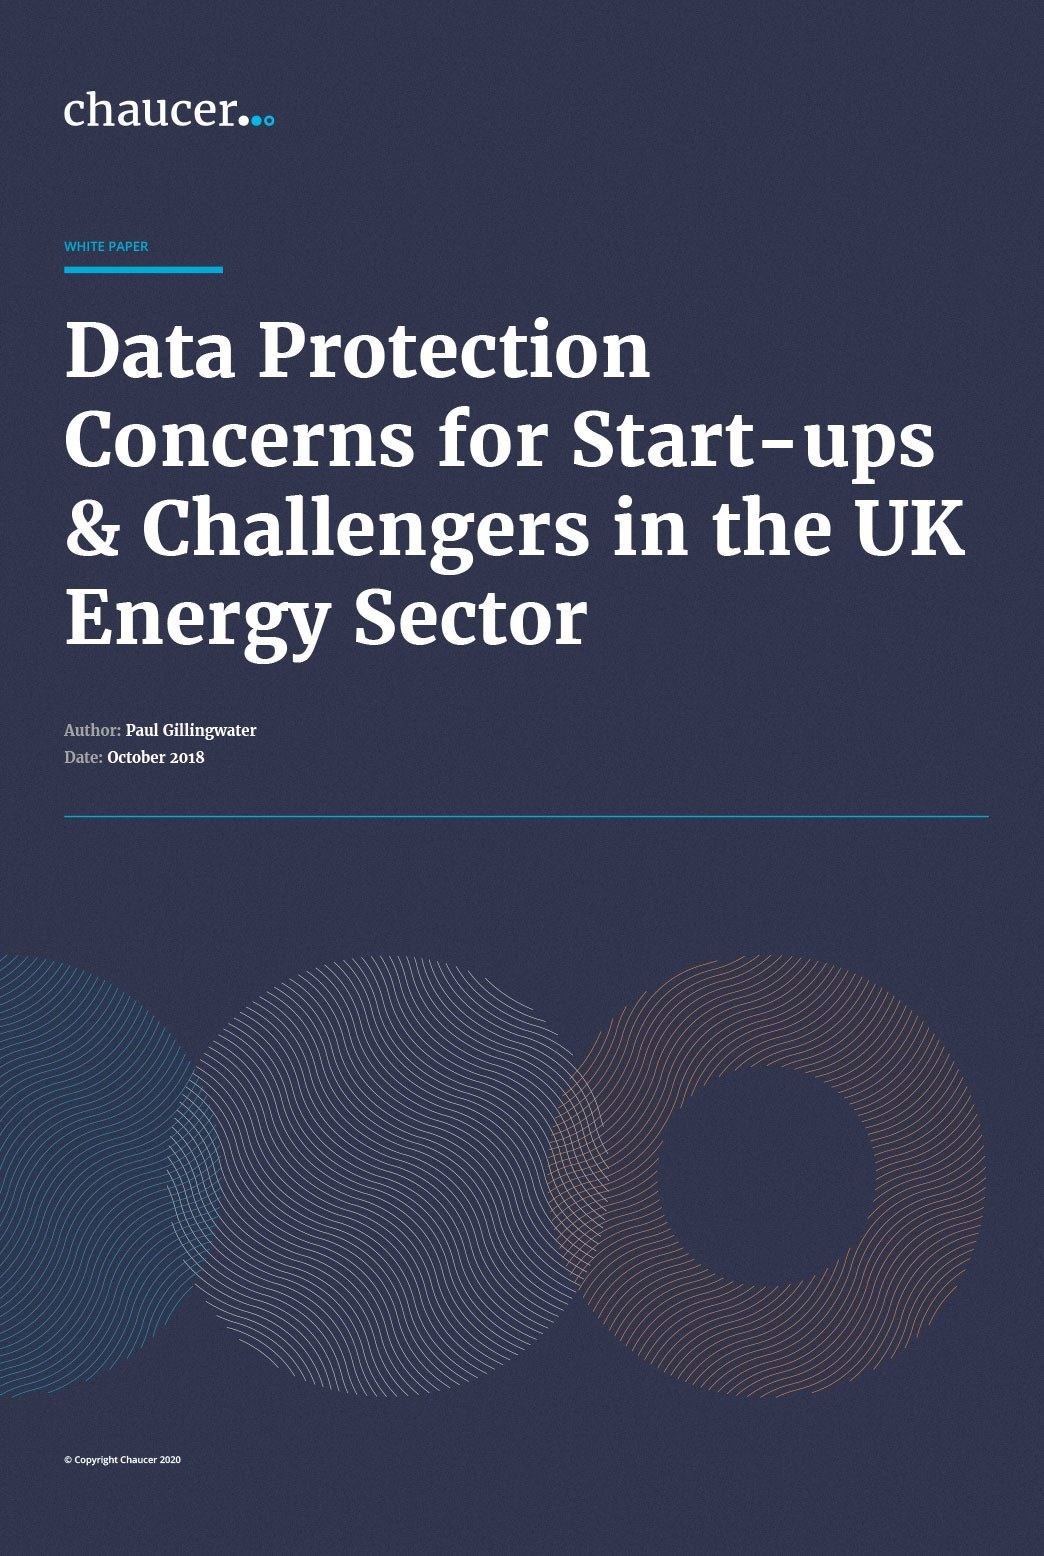 Data Protection Concerns for Start-ups & Challengers in the UK Energy Sector